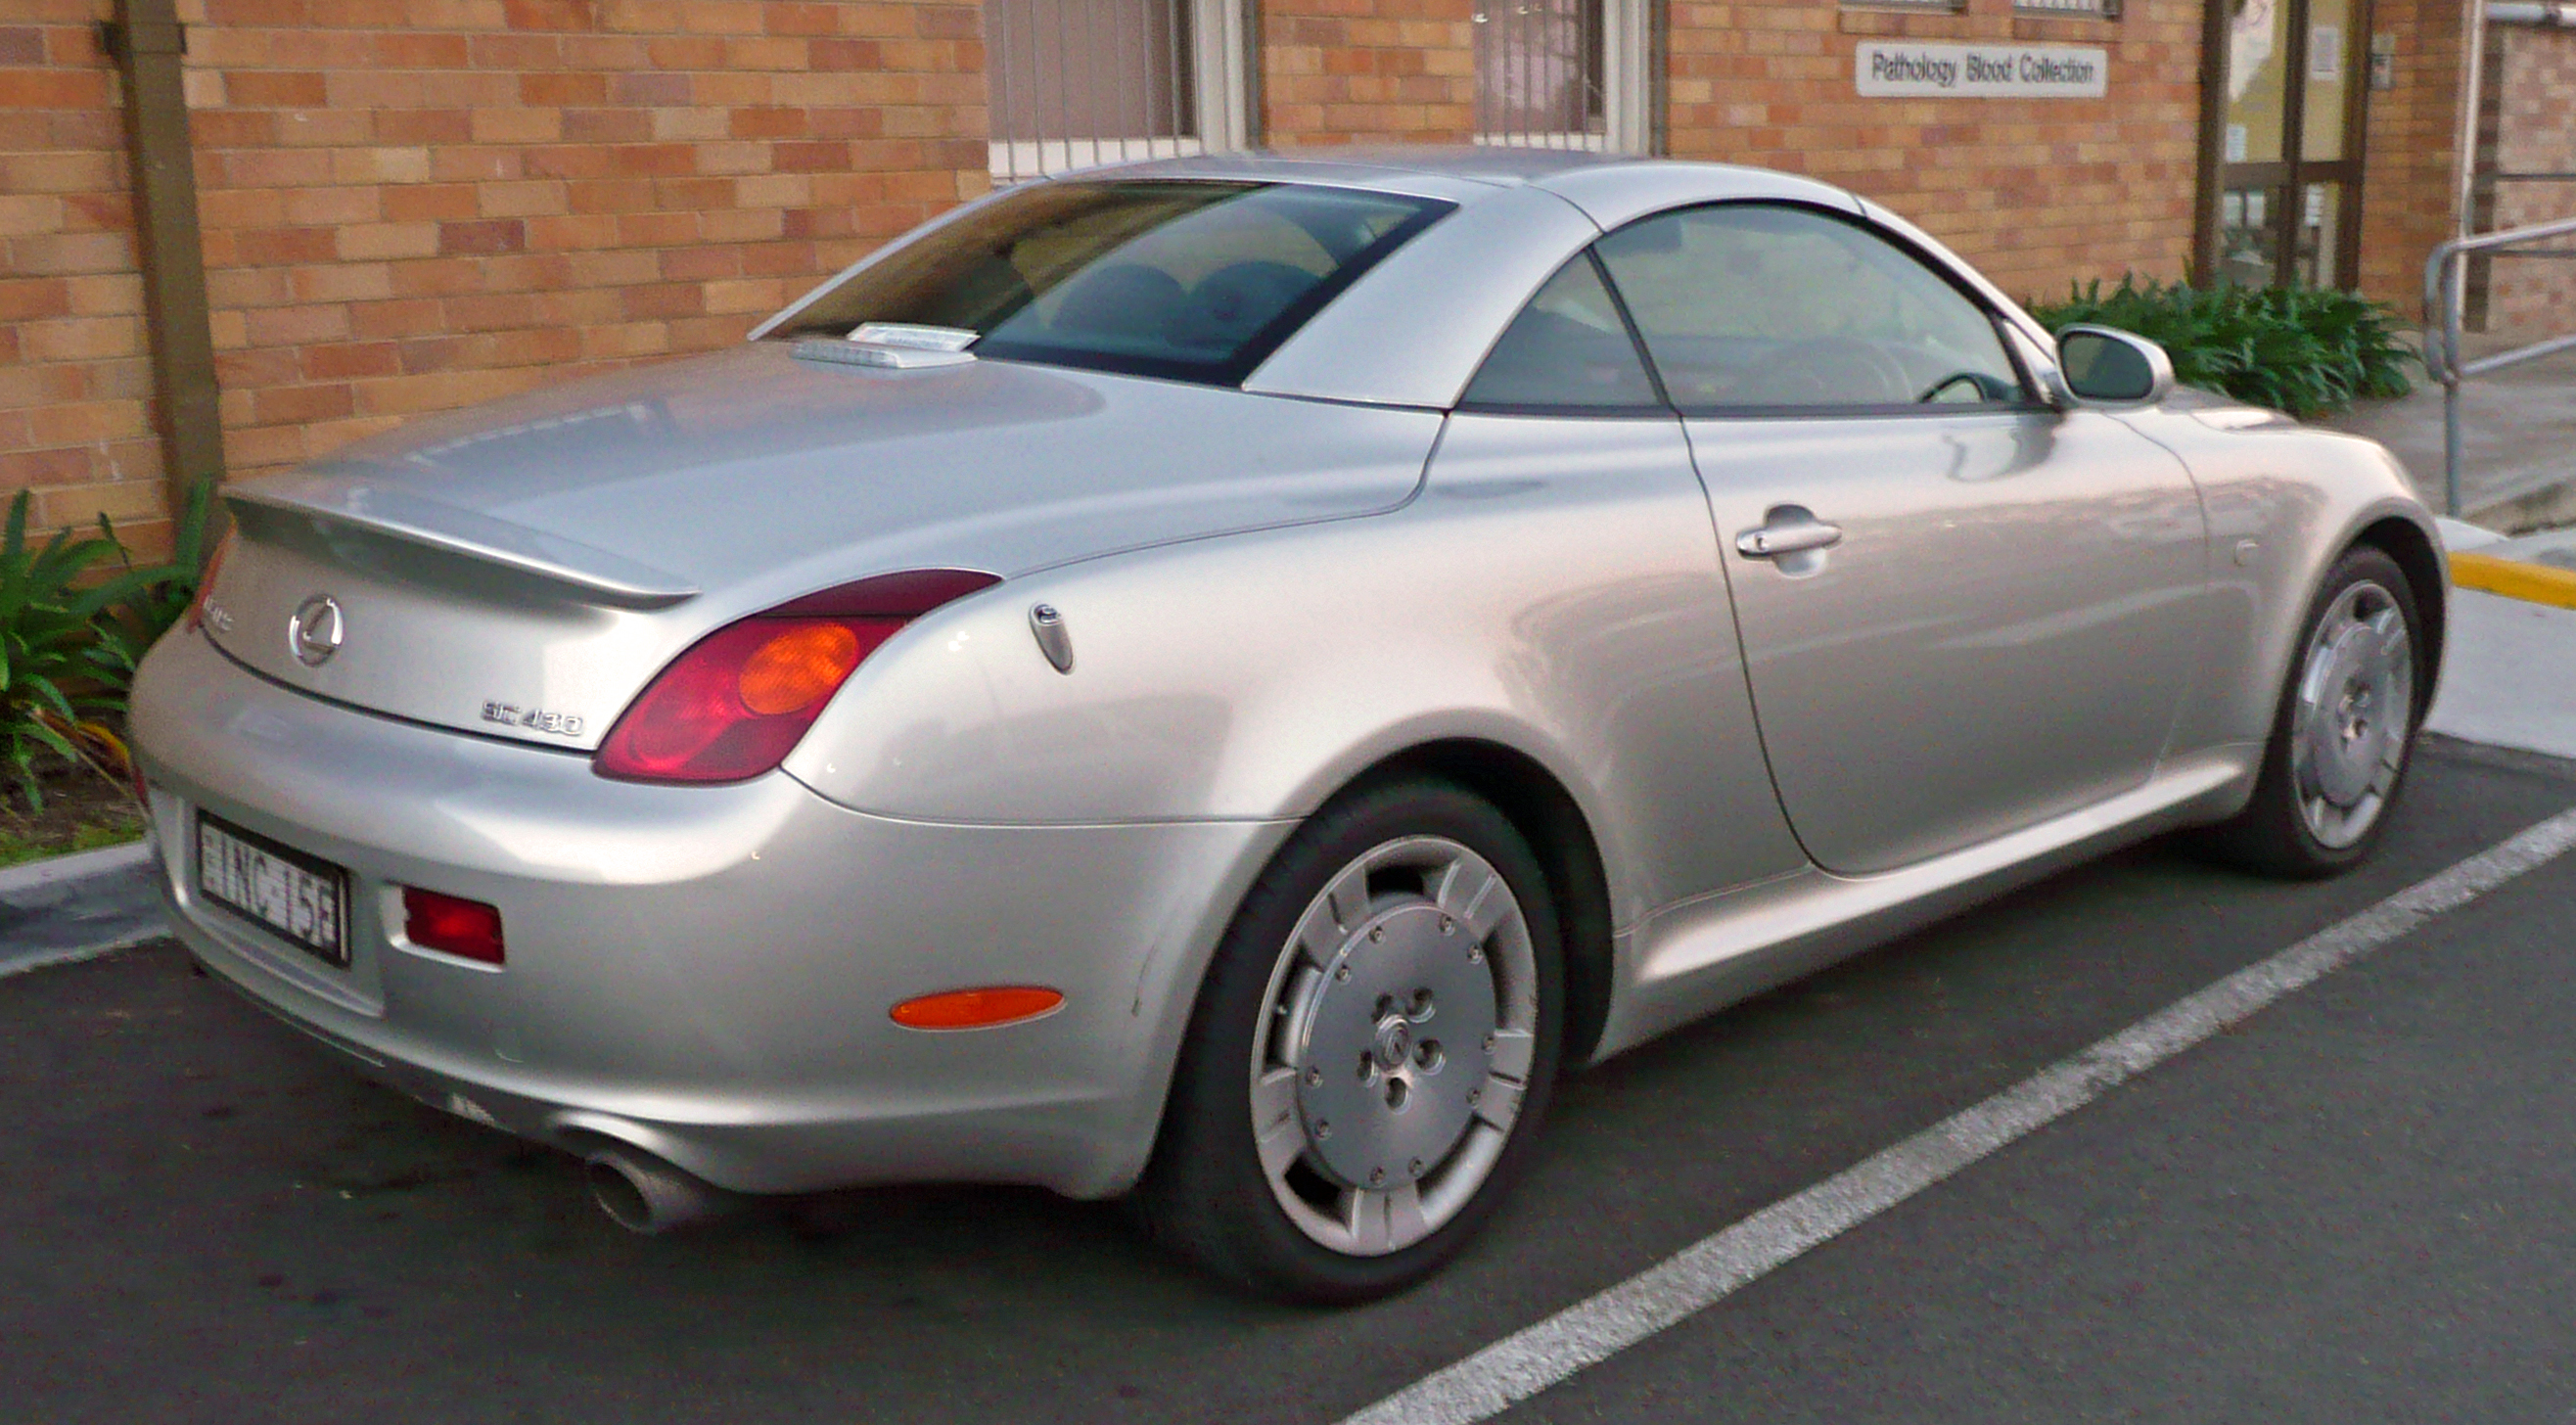 https://upload.wikimedia.org/wikipedia/commons/b/b3/2001-2005_Lexus_SC_430_%28UZZ40R%29_convertible_02.jpg